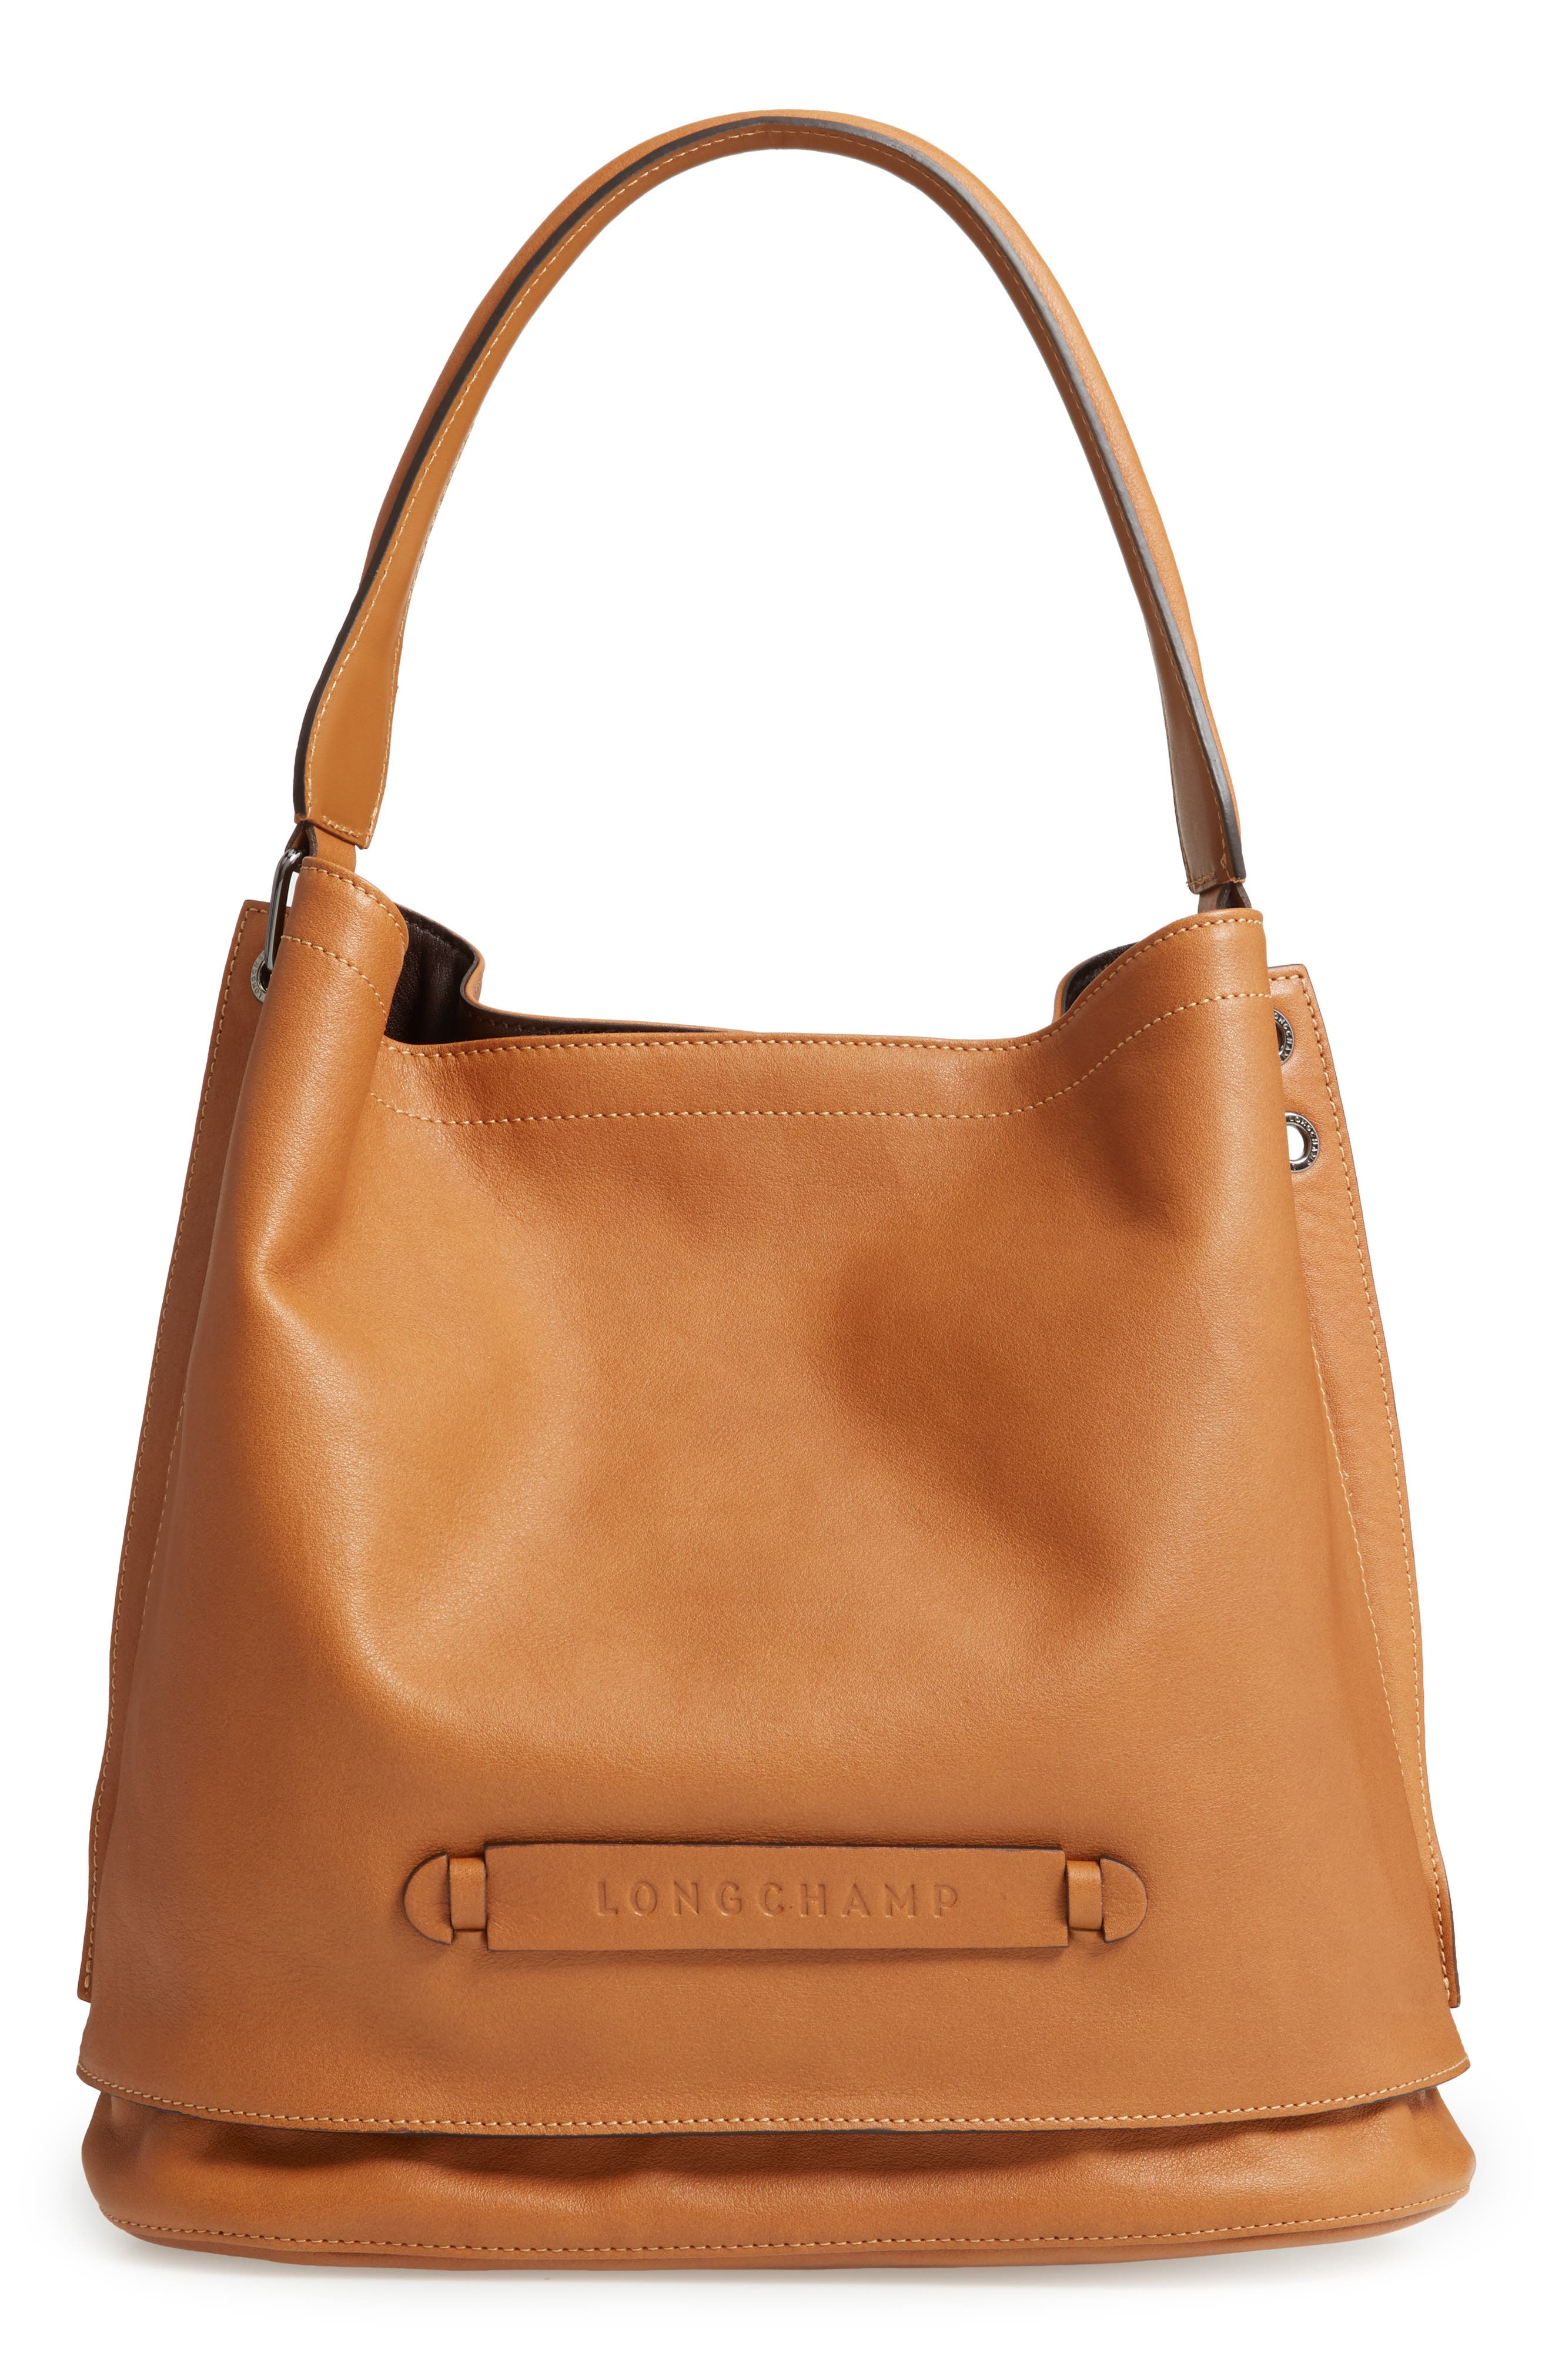 '3D' LEATHER HOBO - BEIGE